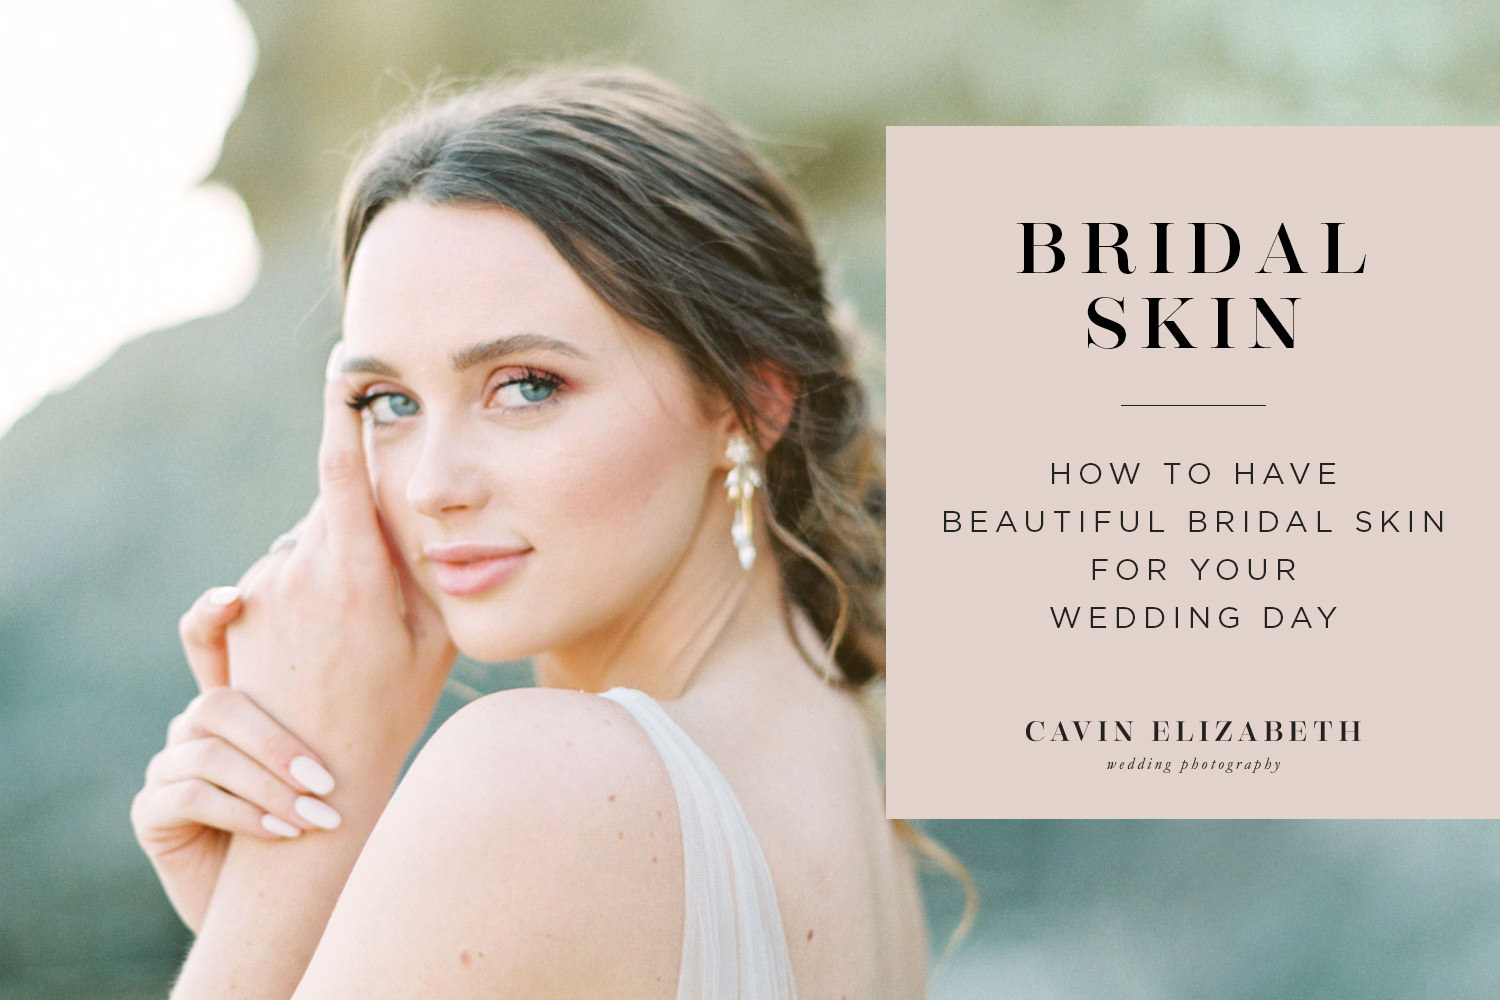 Achieving Beautiful Bridal Skin for Your Wedding Day